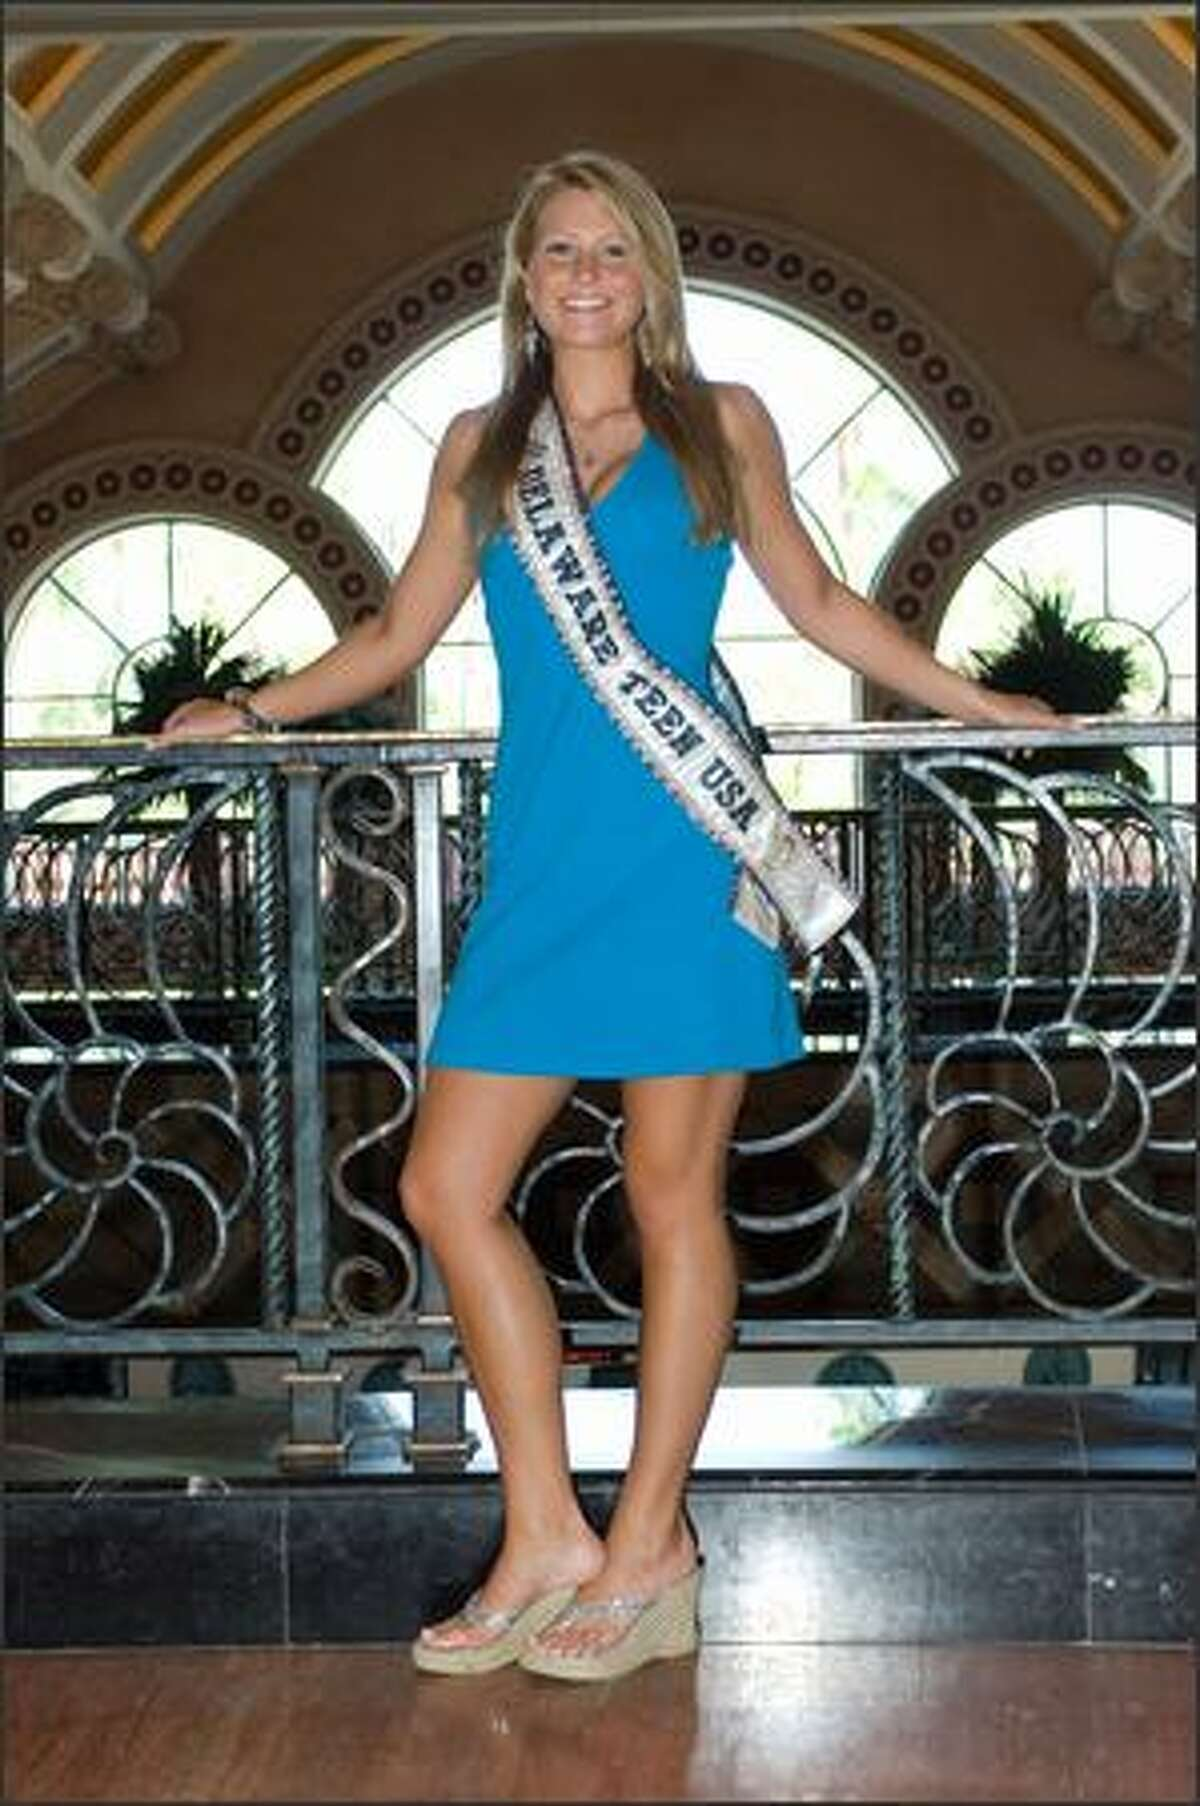 Bethany Brindley, Miss Delaware, arrives in the Royal Tower lobby at Atlantis on Tuesday.